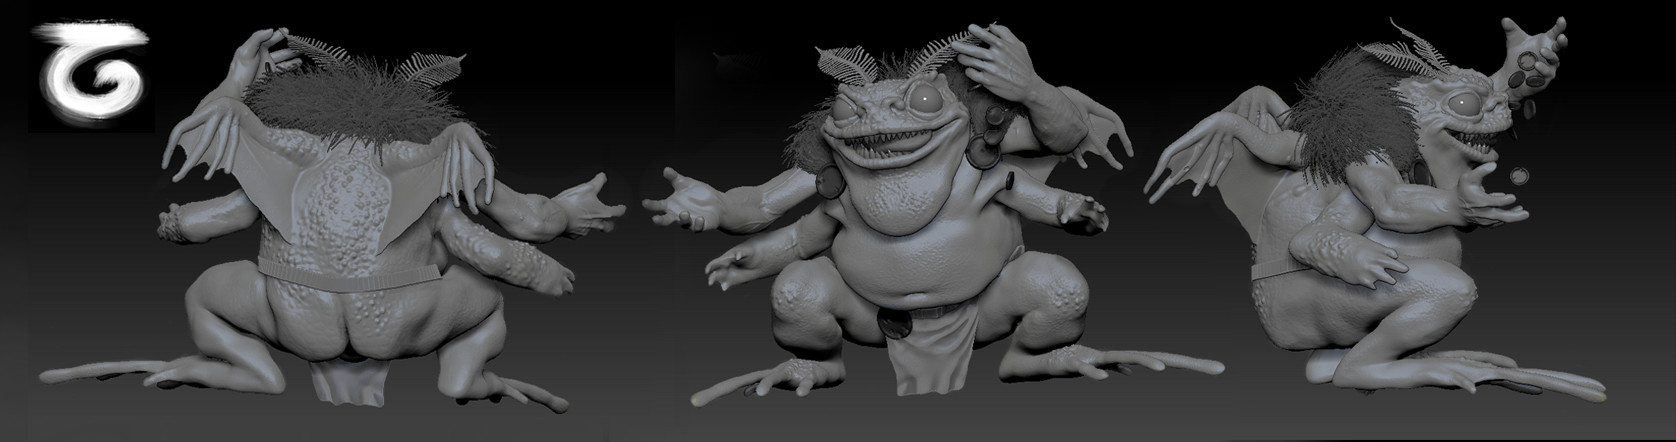 Sean randolph froggie process final